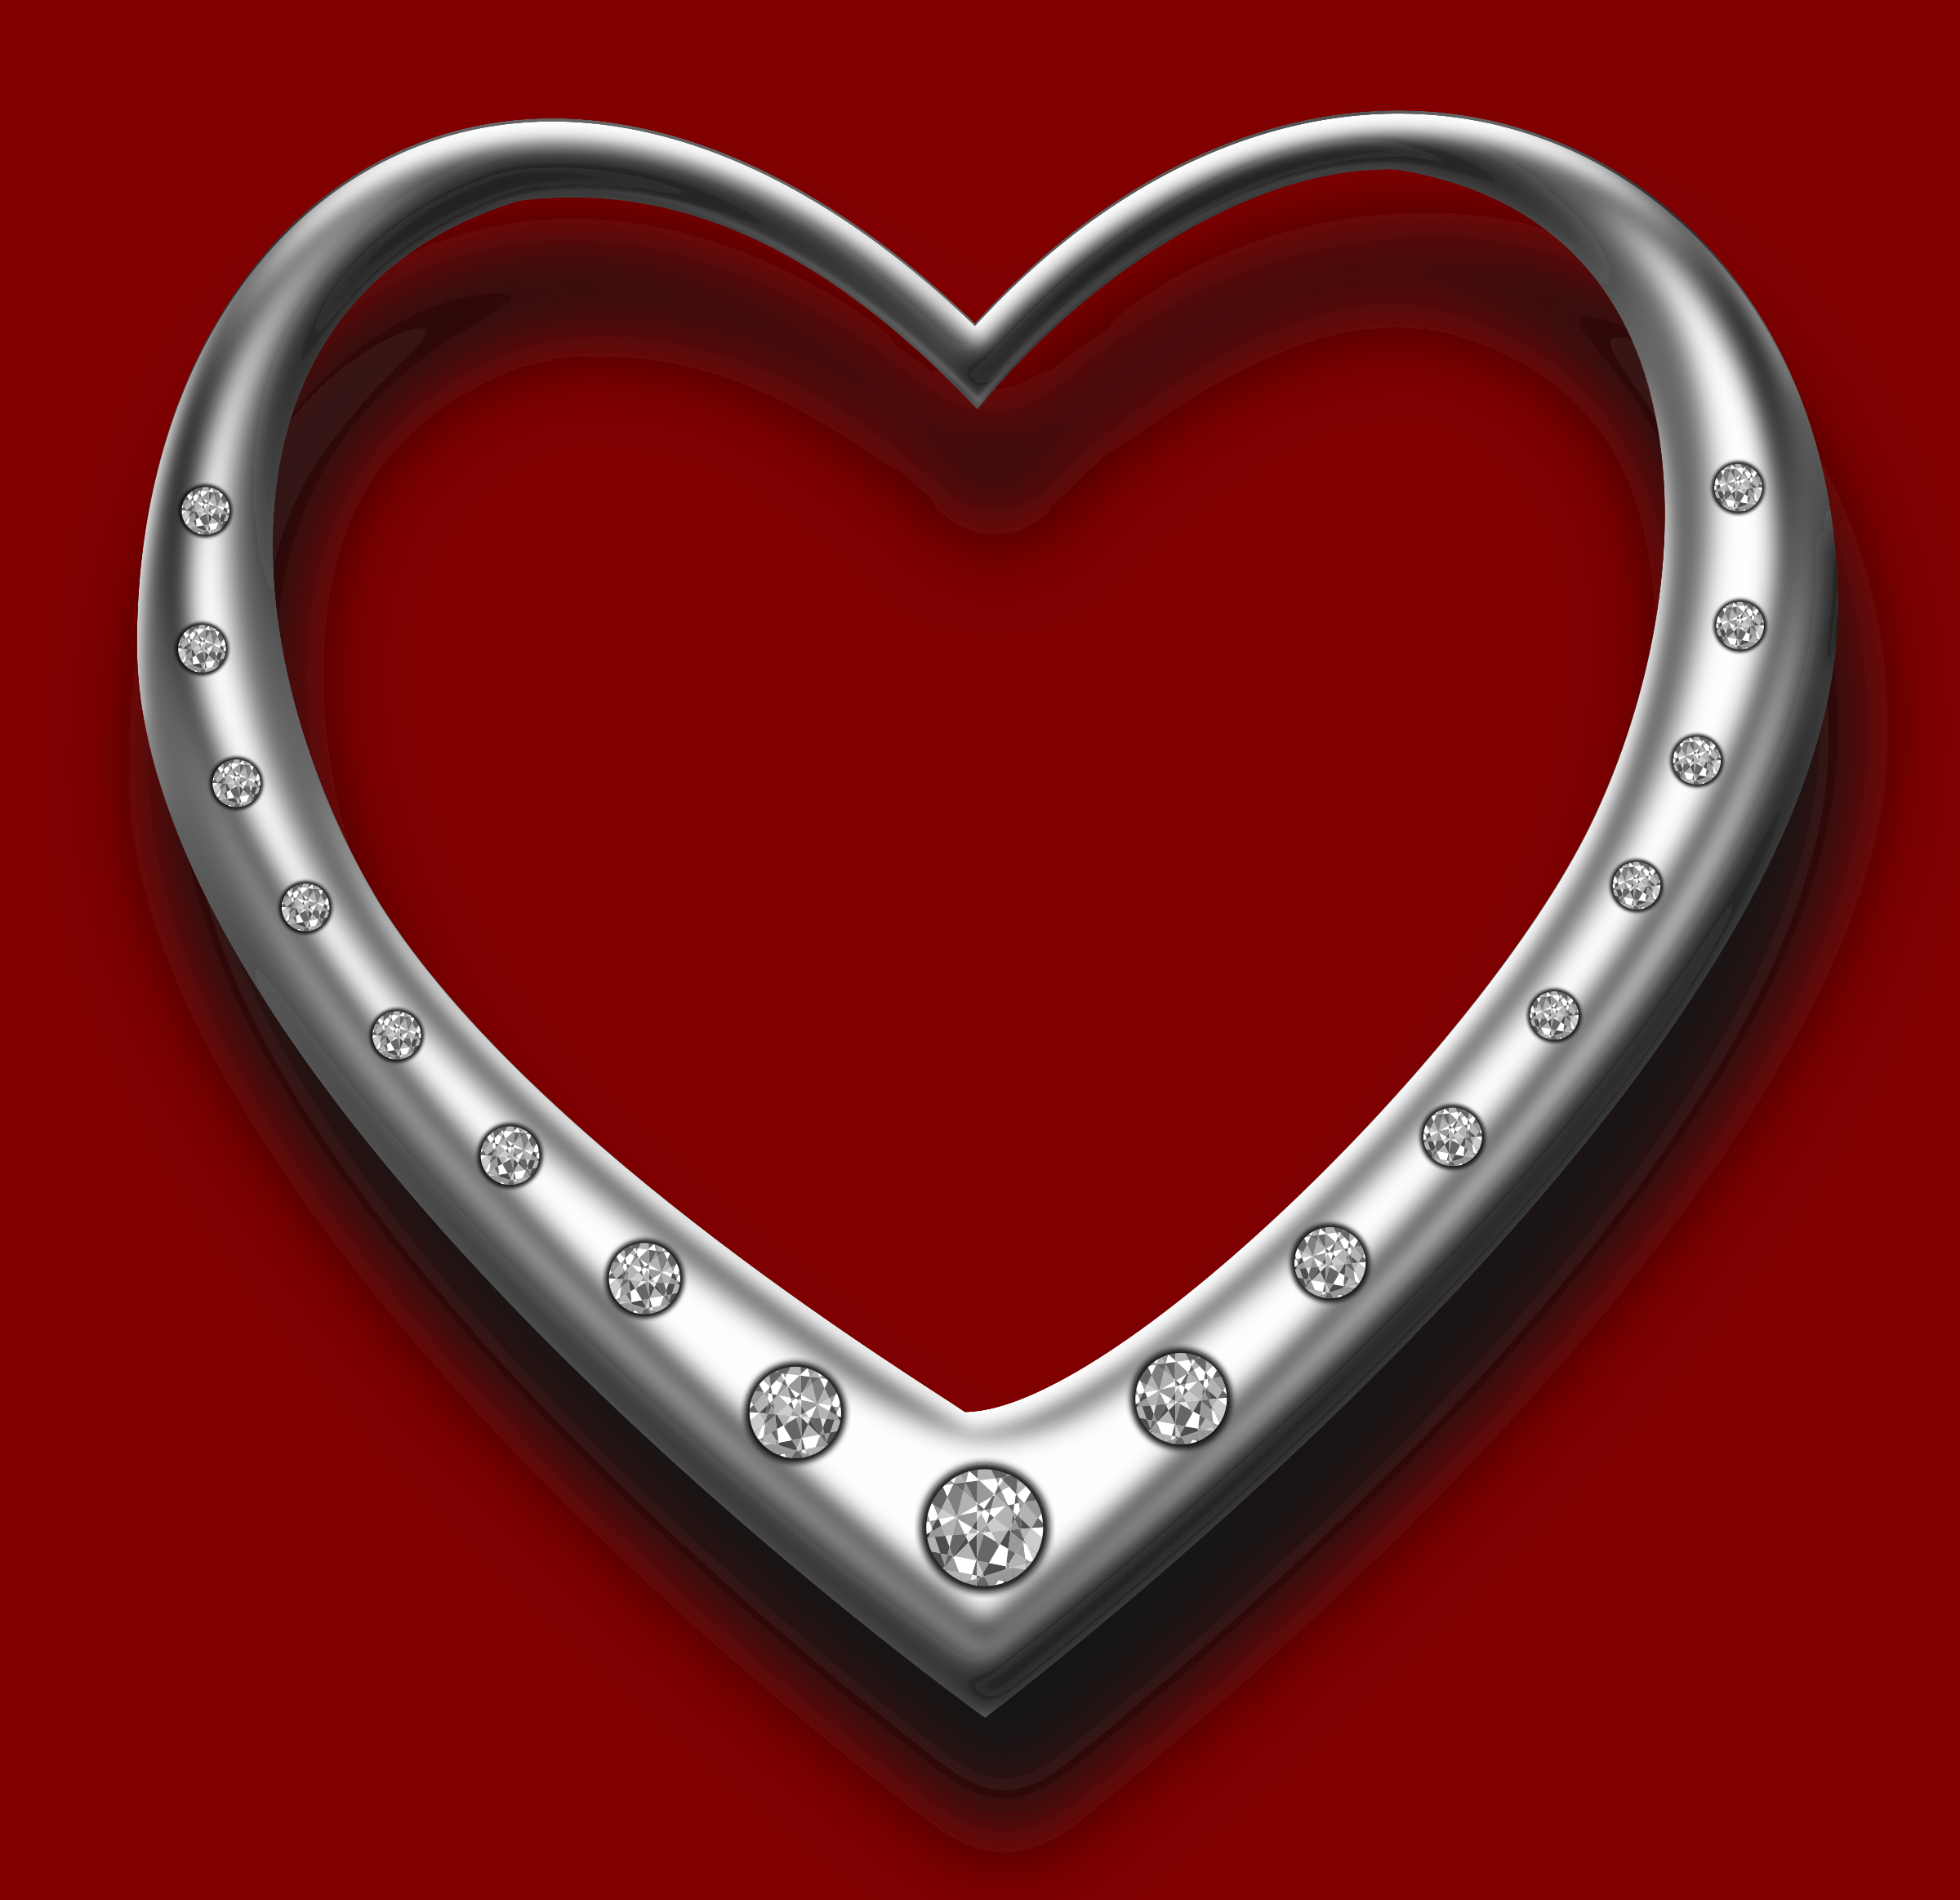 Heart with diamonds by Chrisdesign